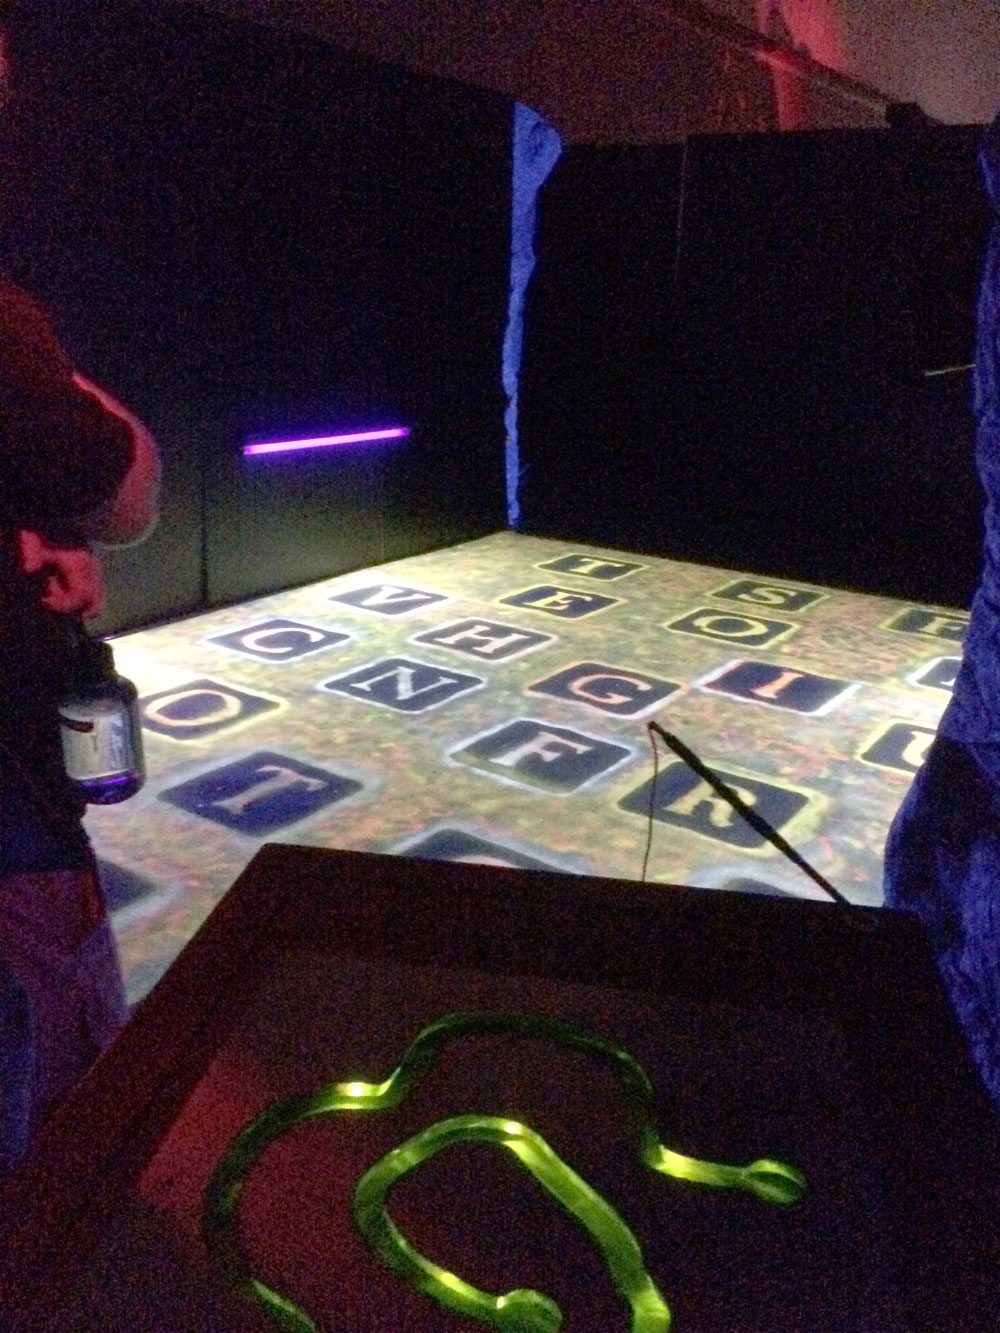 One of our favorite puzzles - Brian S. figured it out, allowing us to escape the danger.